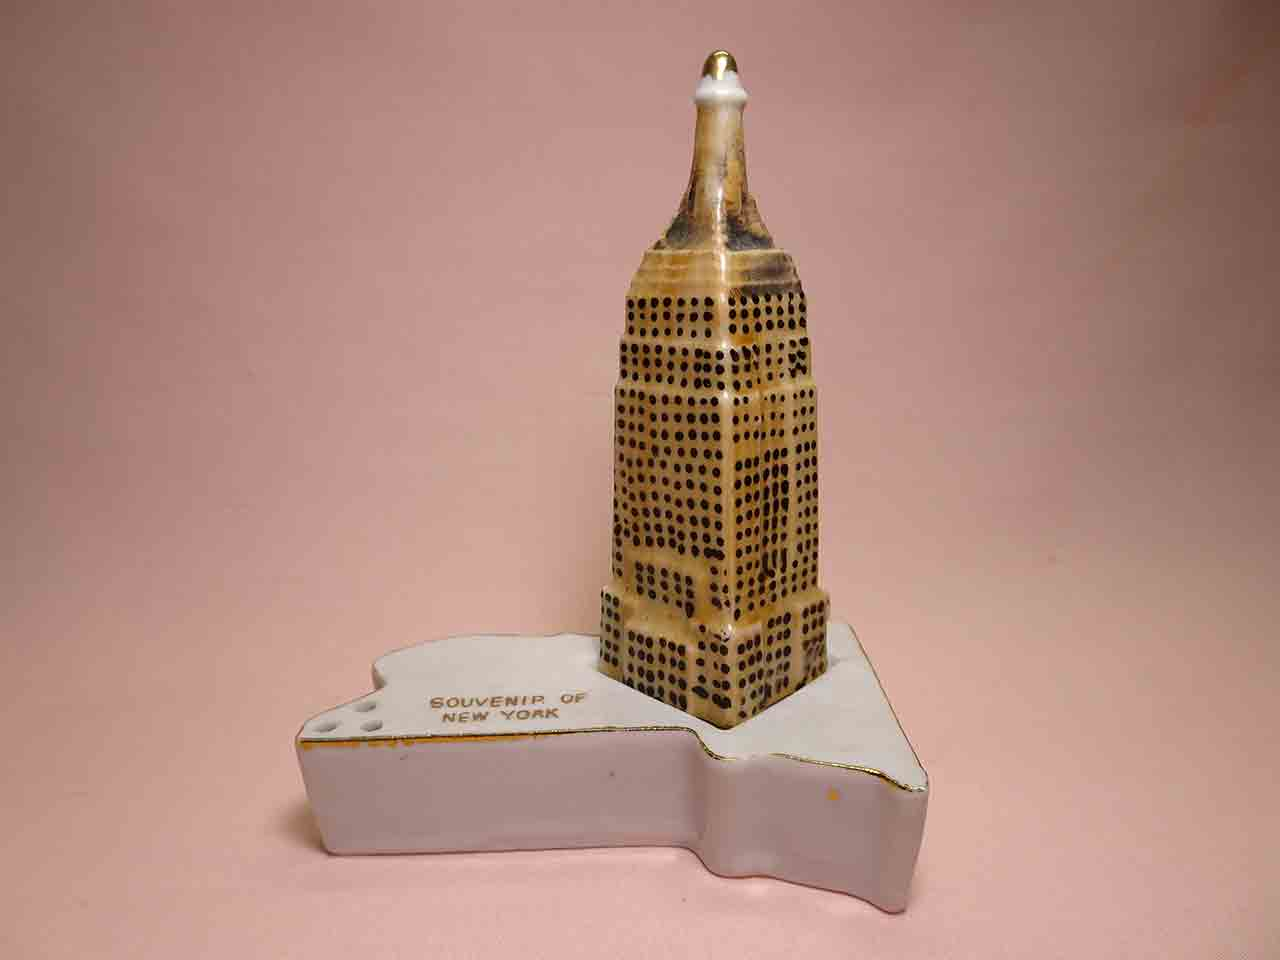 New York with Empire State Building salt and pepper shakers